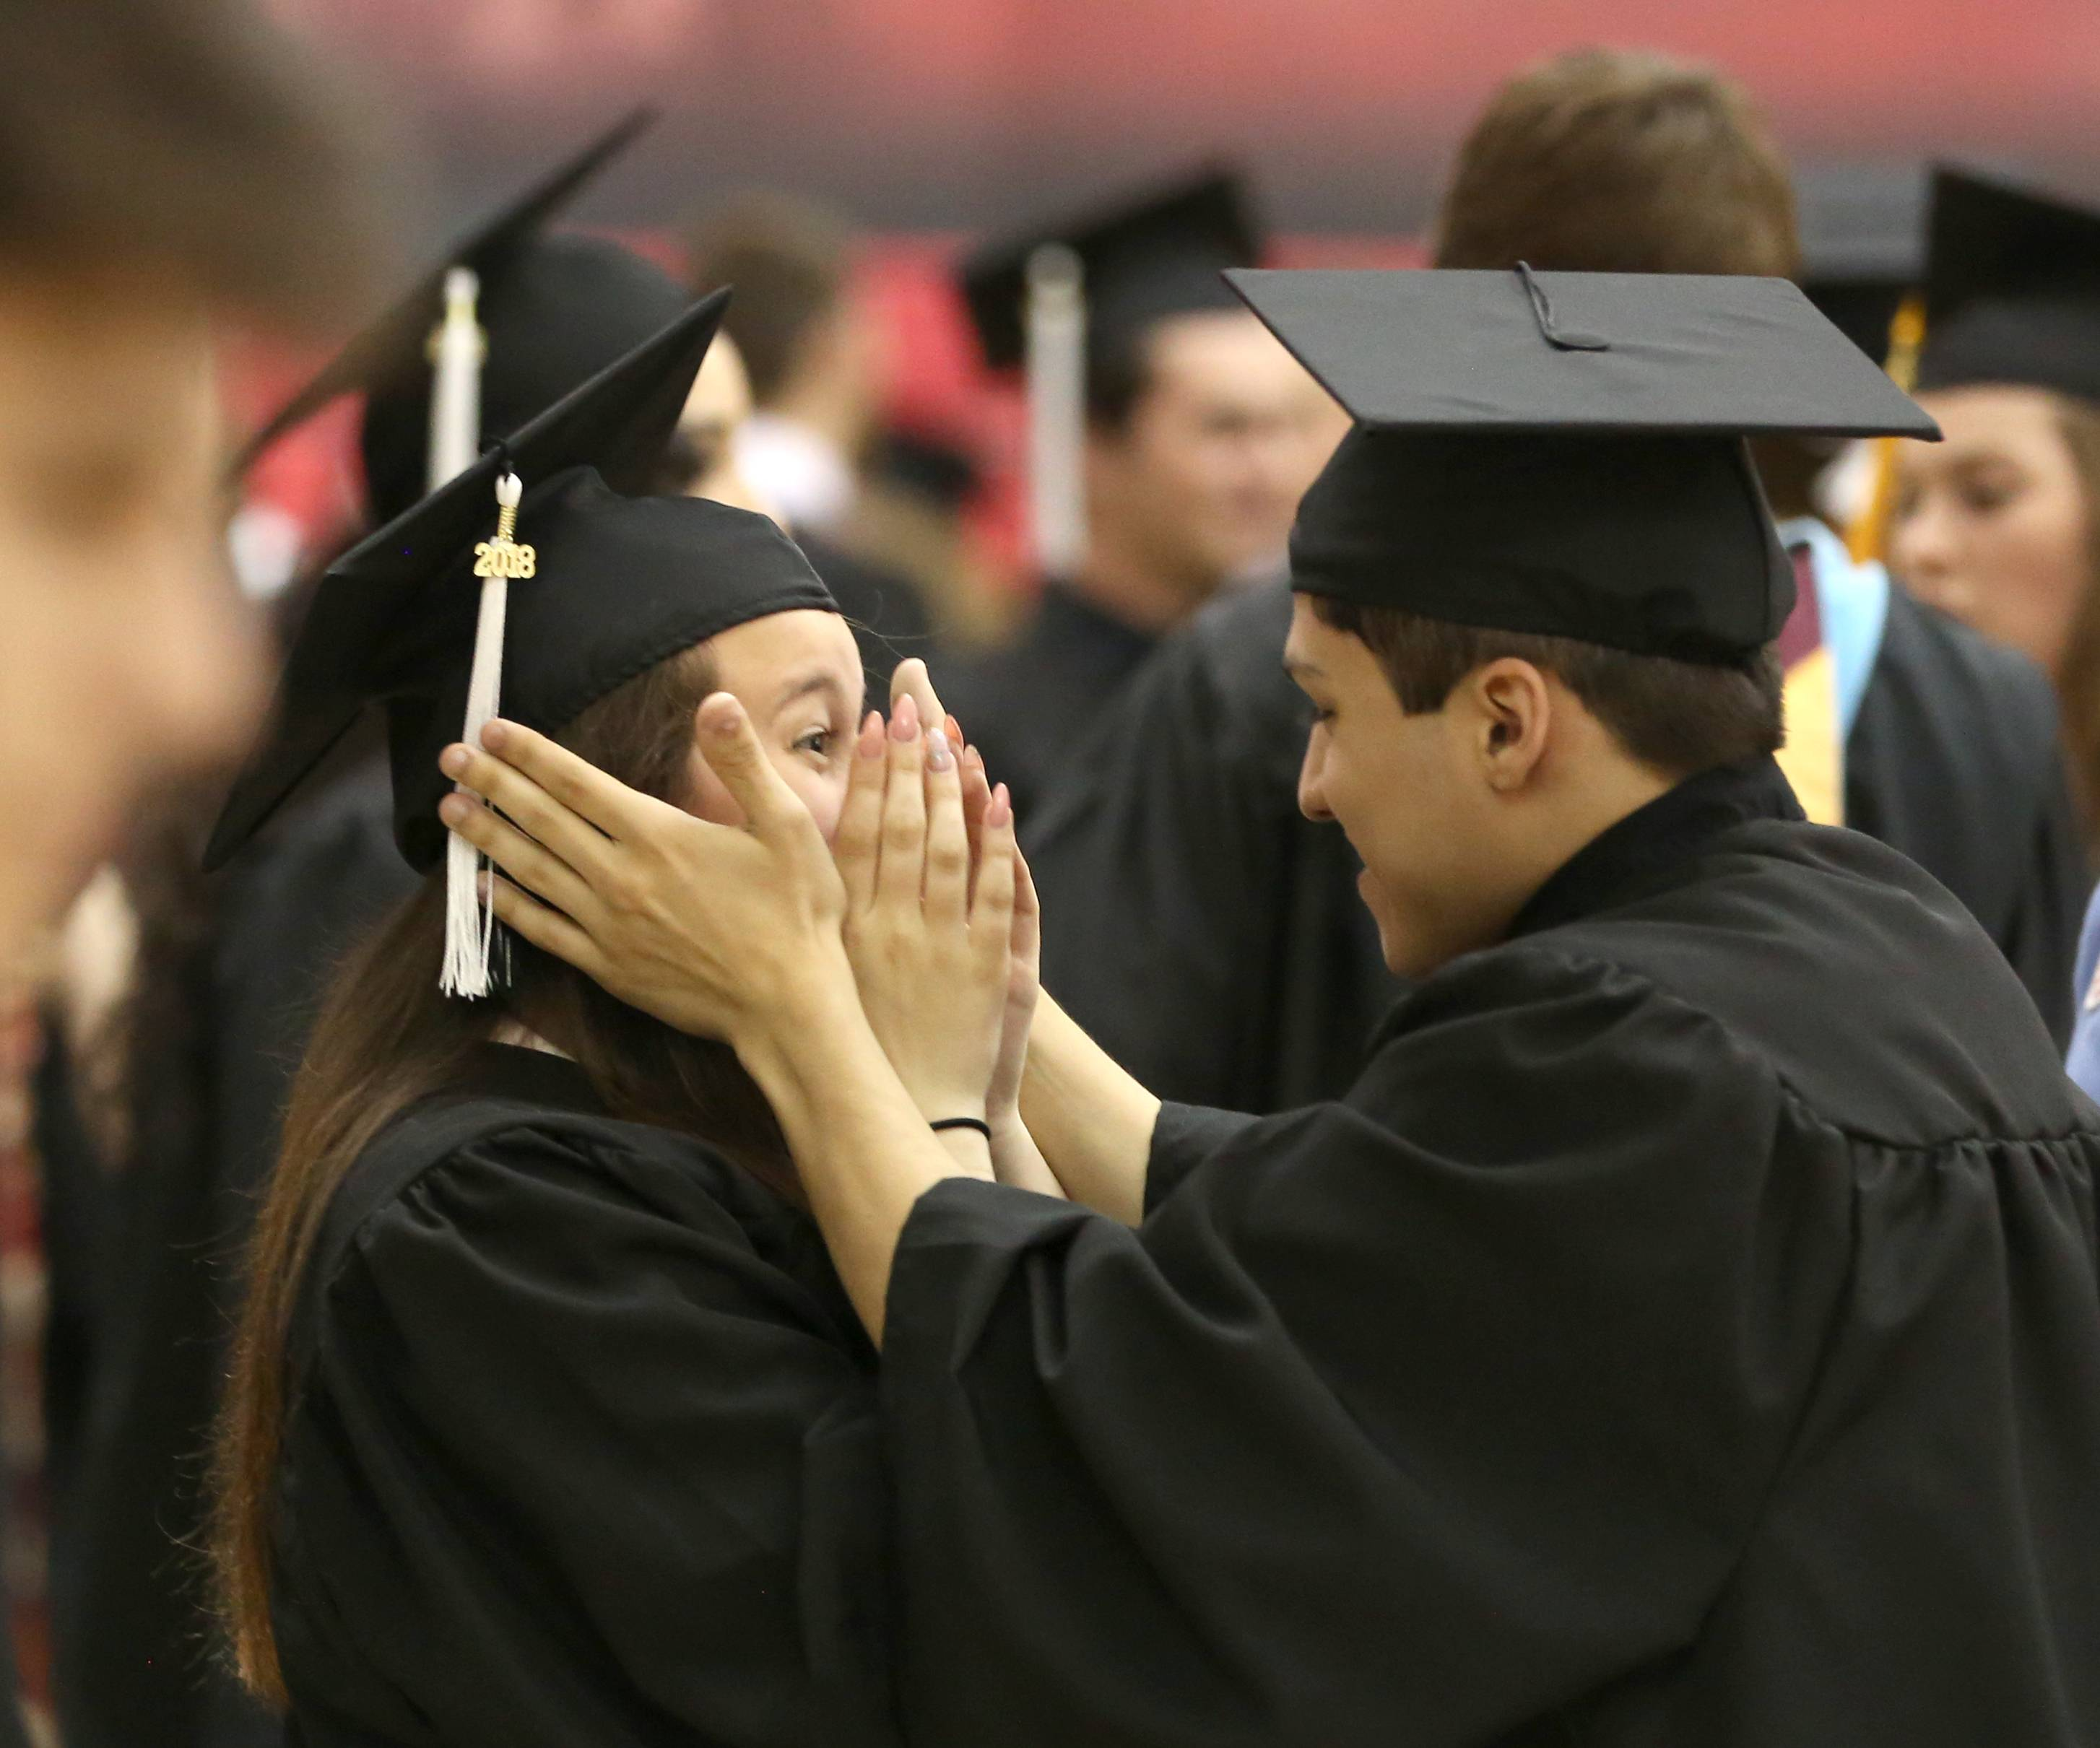 Brandon Albarran, right, and Madison Powell, left, share a moment as they prepare for the commencement program for Kaneland High School Sunday, May 20, 2018 at the Convocation Center on the campus of Northern Illinois University in DeKalb.